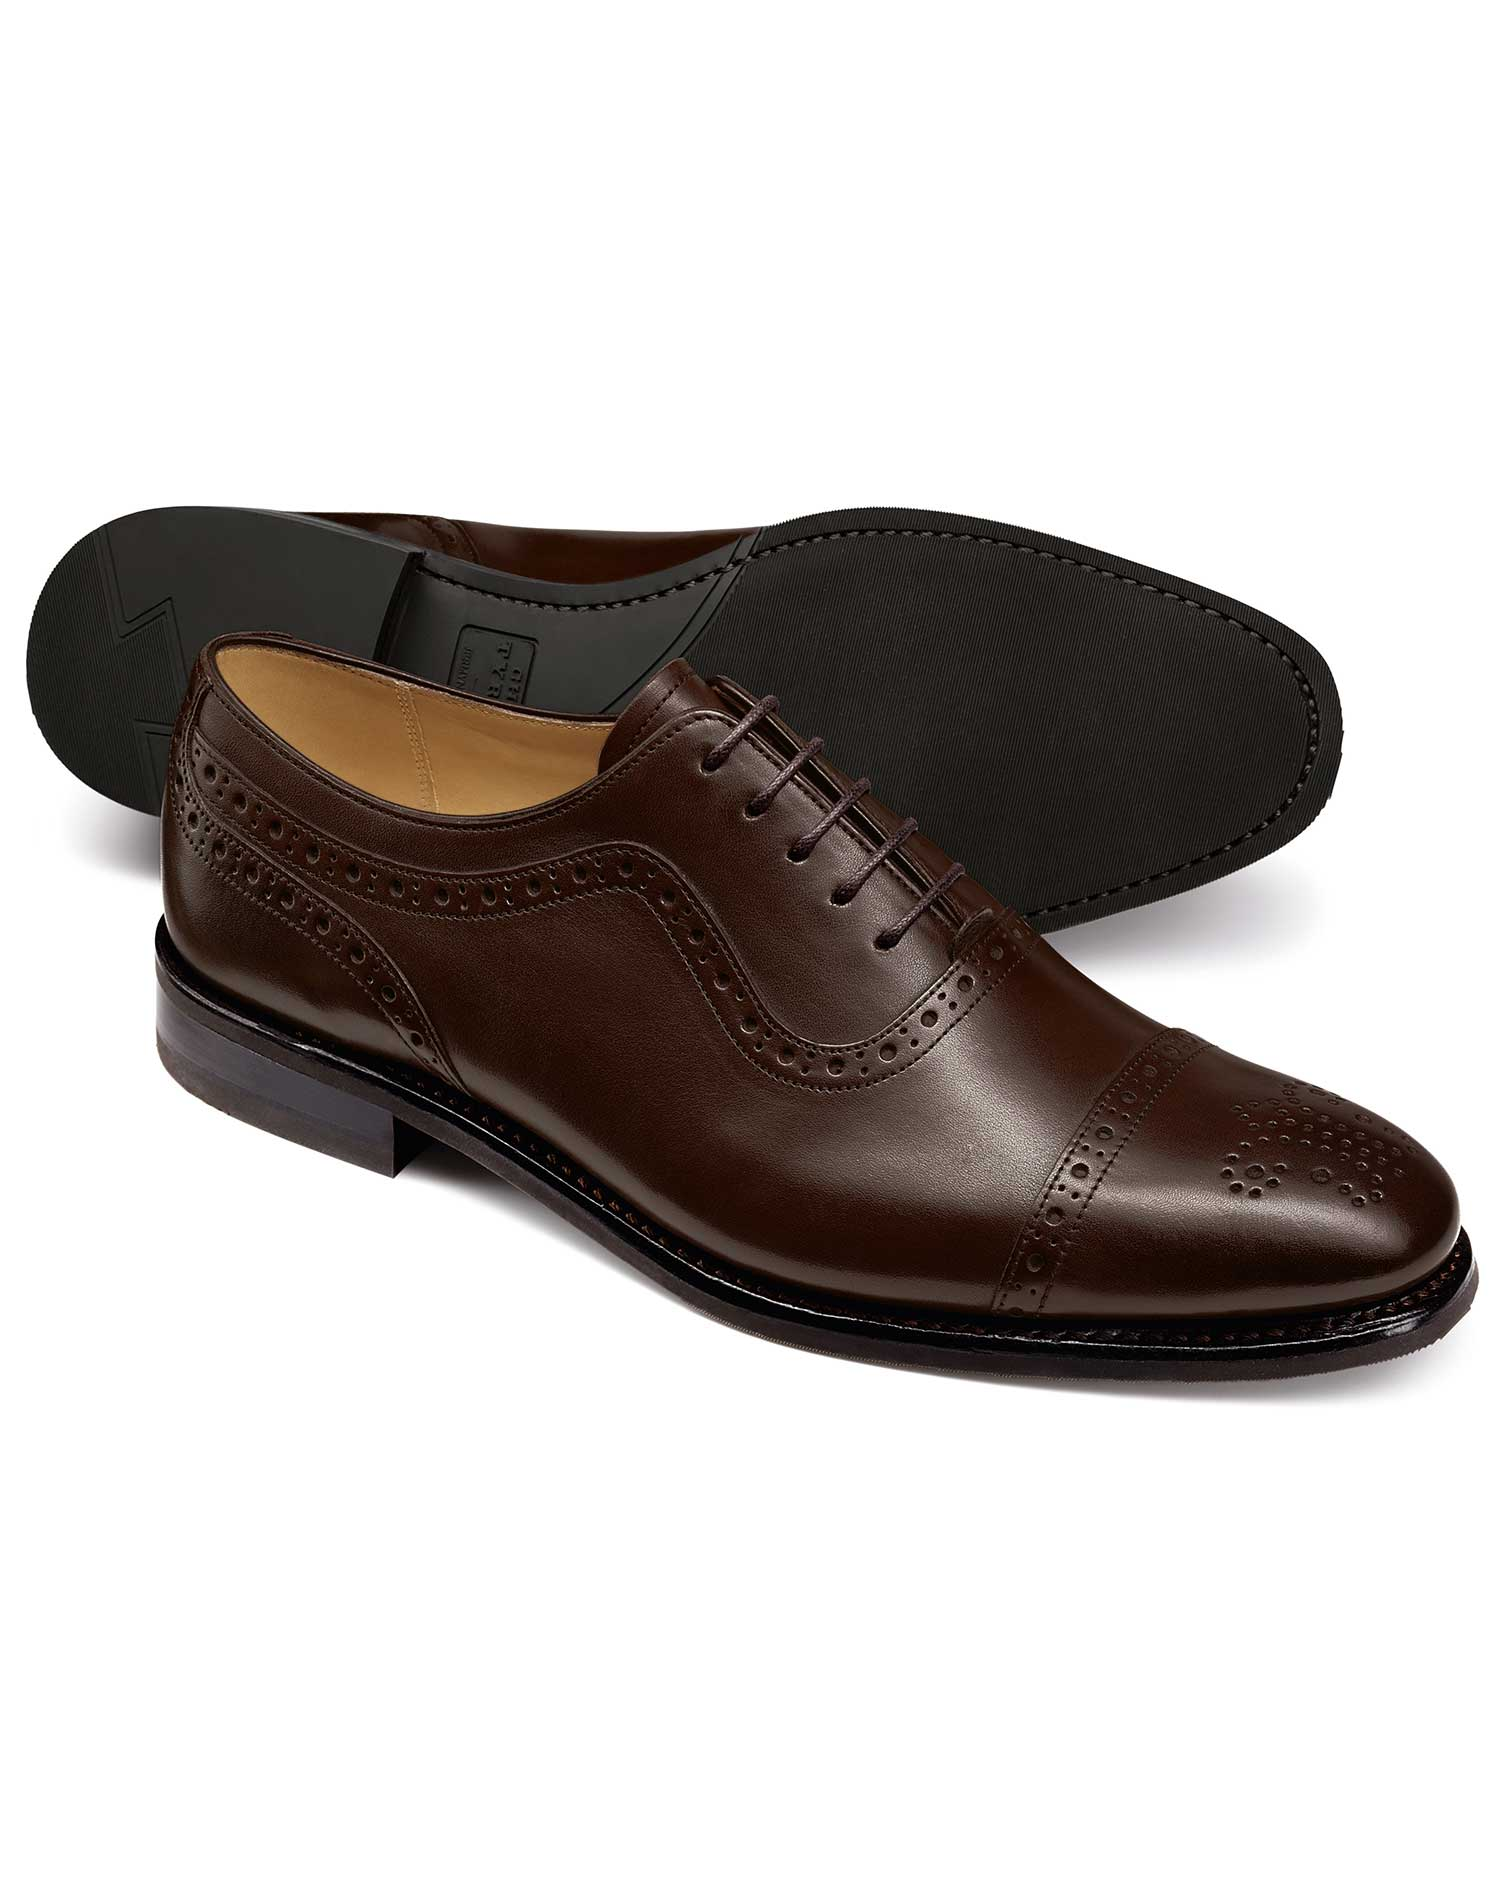 Chocolate Goodyear Welted Oxford Brogue Rubber Sole Shoe Size 6.5 R by Charles Tyrwhitt